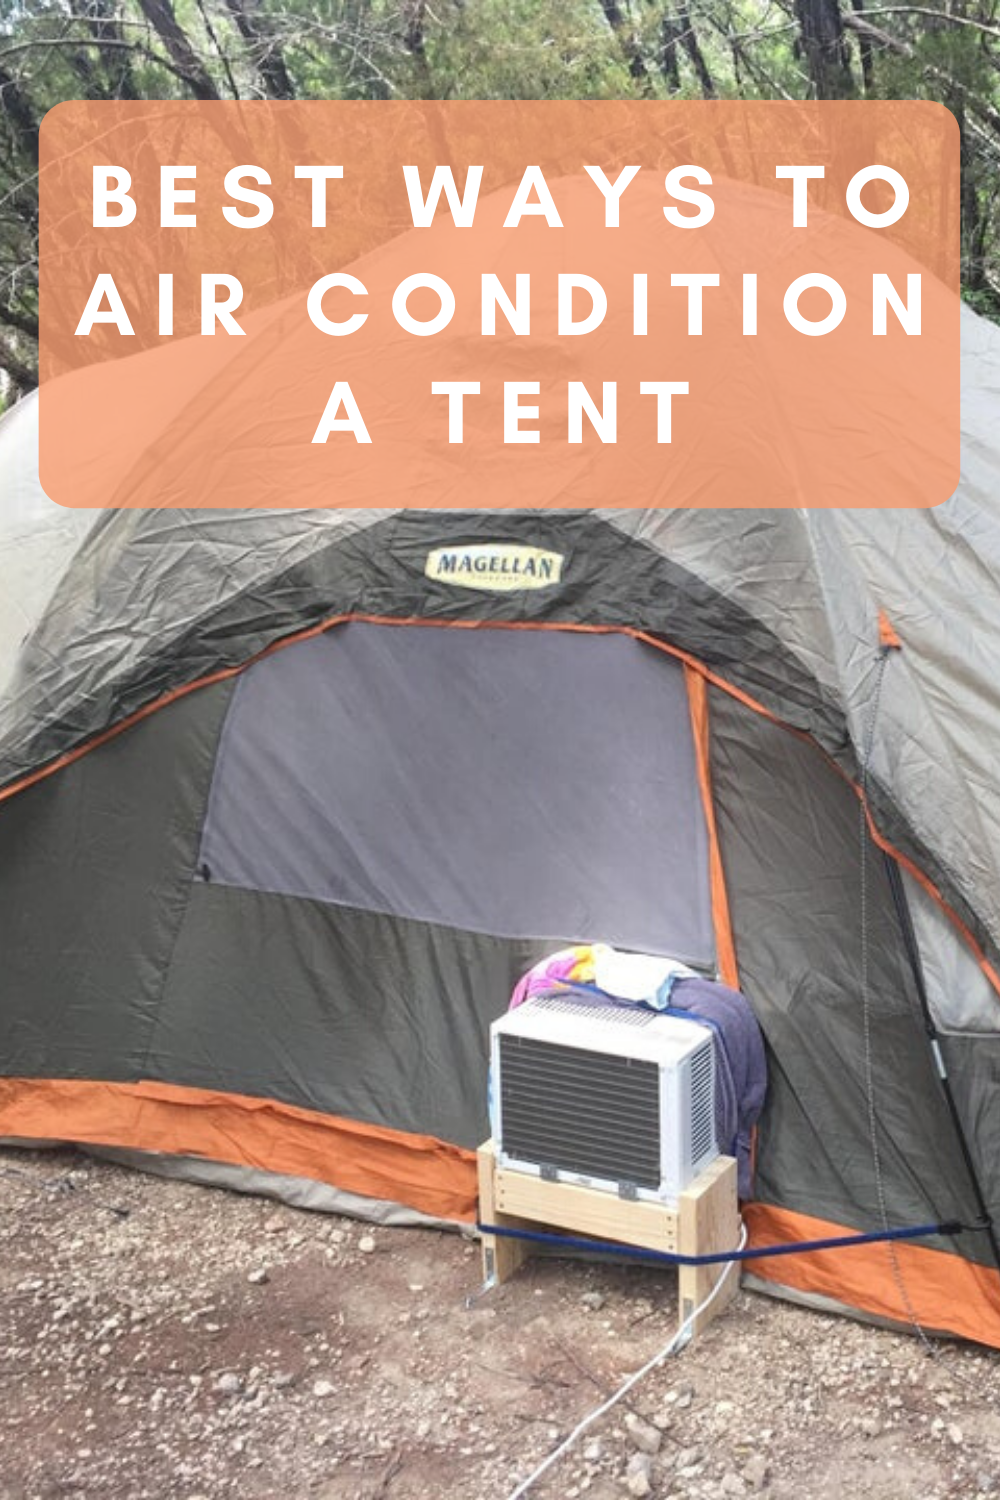 Tents with AC Ports and How to Air Condition a Tent